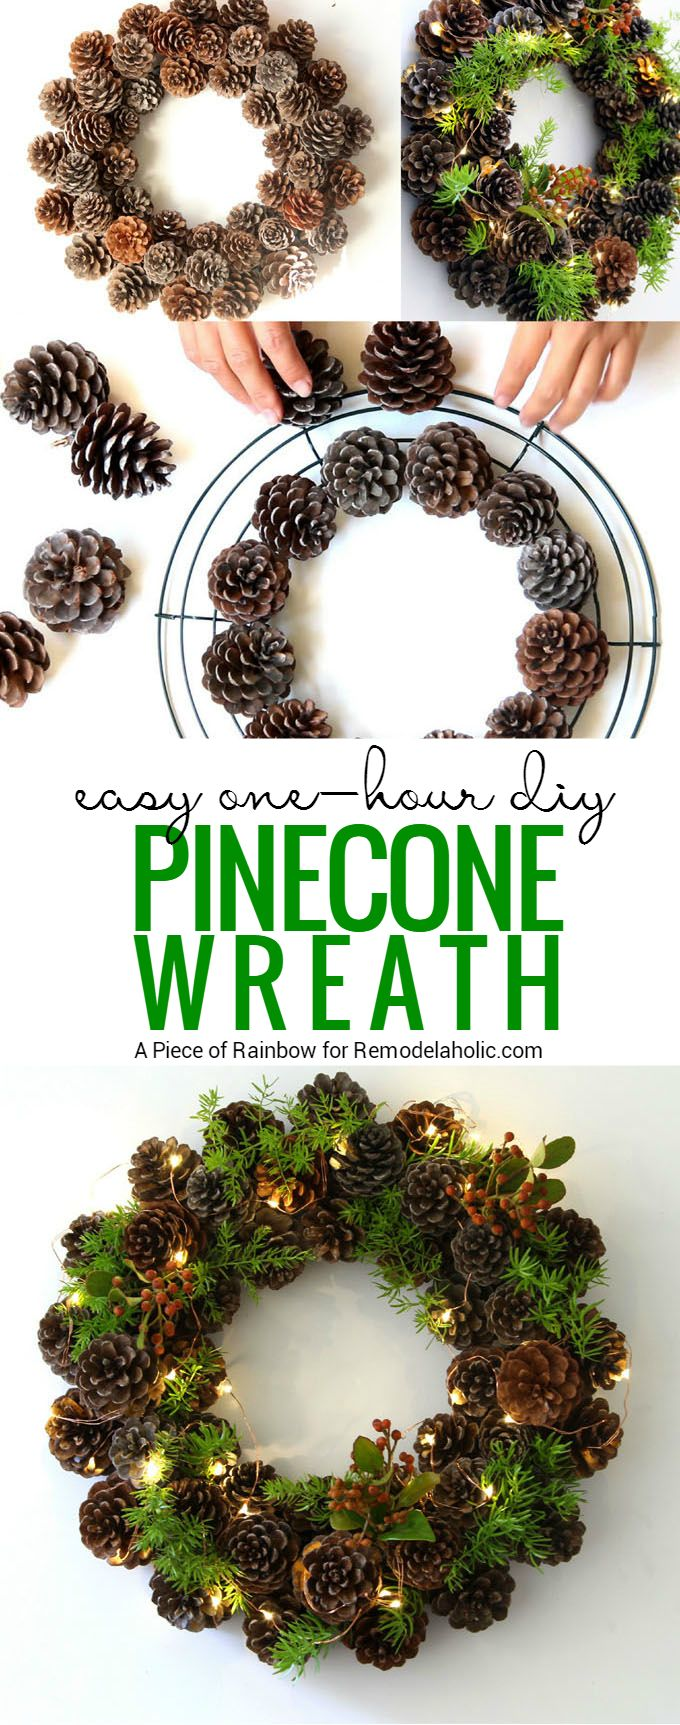 25 best ideas about pine cone wreath on pinterest pinecone pine cone crafts and diy - Crafty winter decorations with pine cones ...